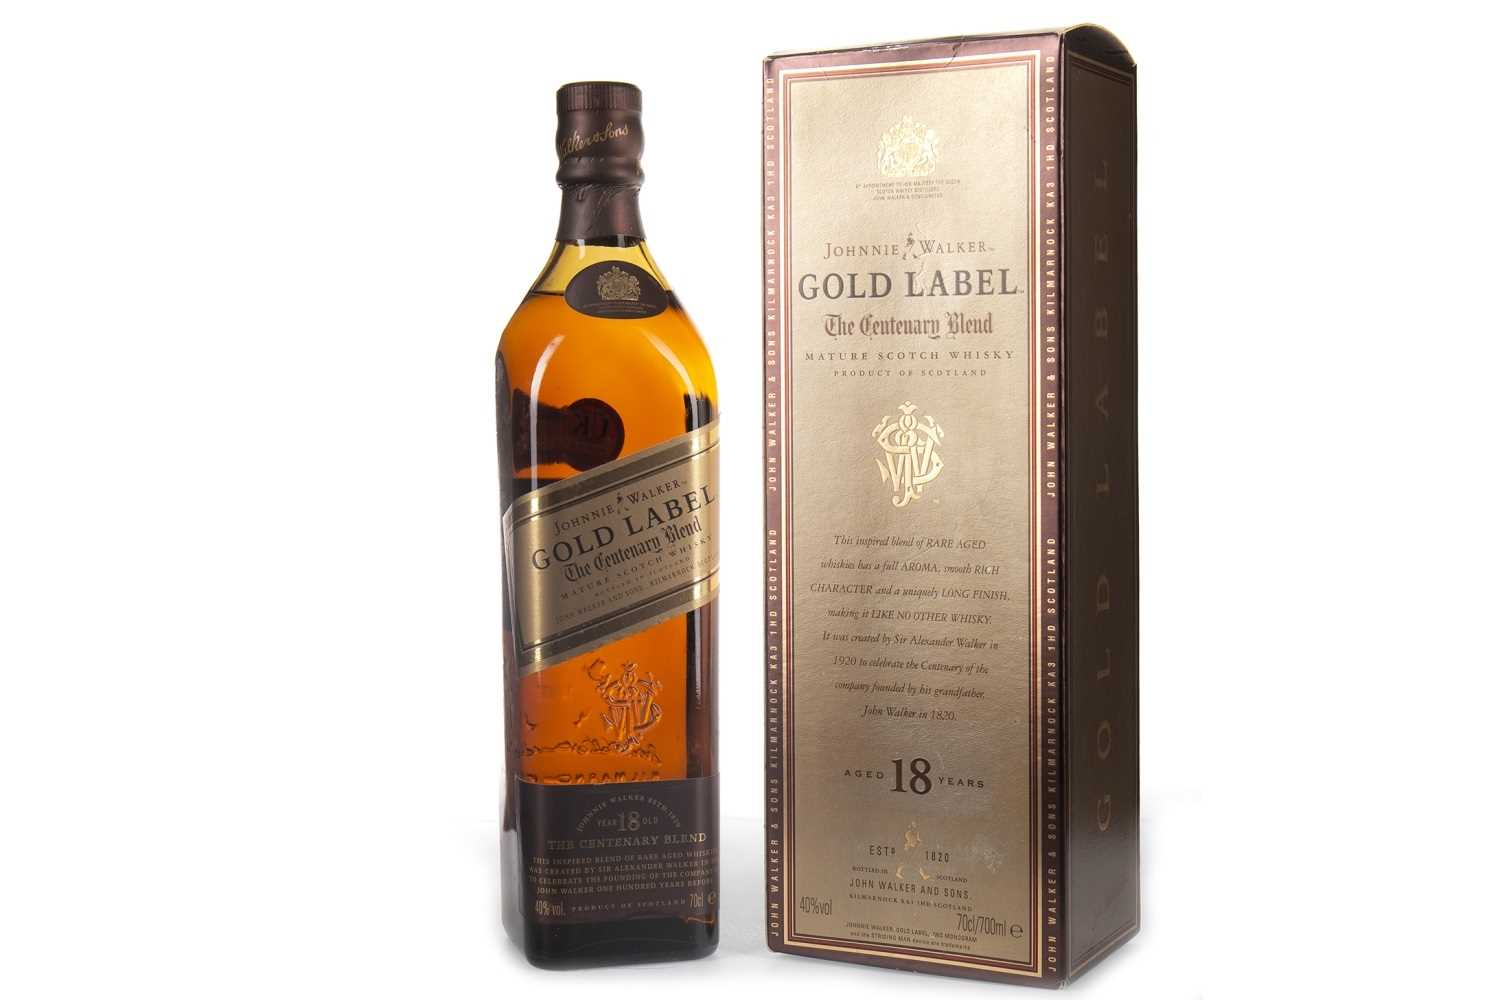 Lot 418-JOHNNIE WALKER THE CENTENARY BLEND 18 YEARS OLD